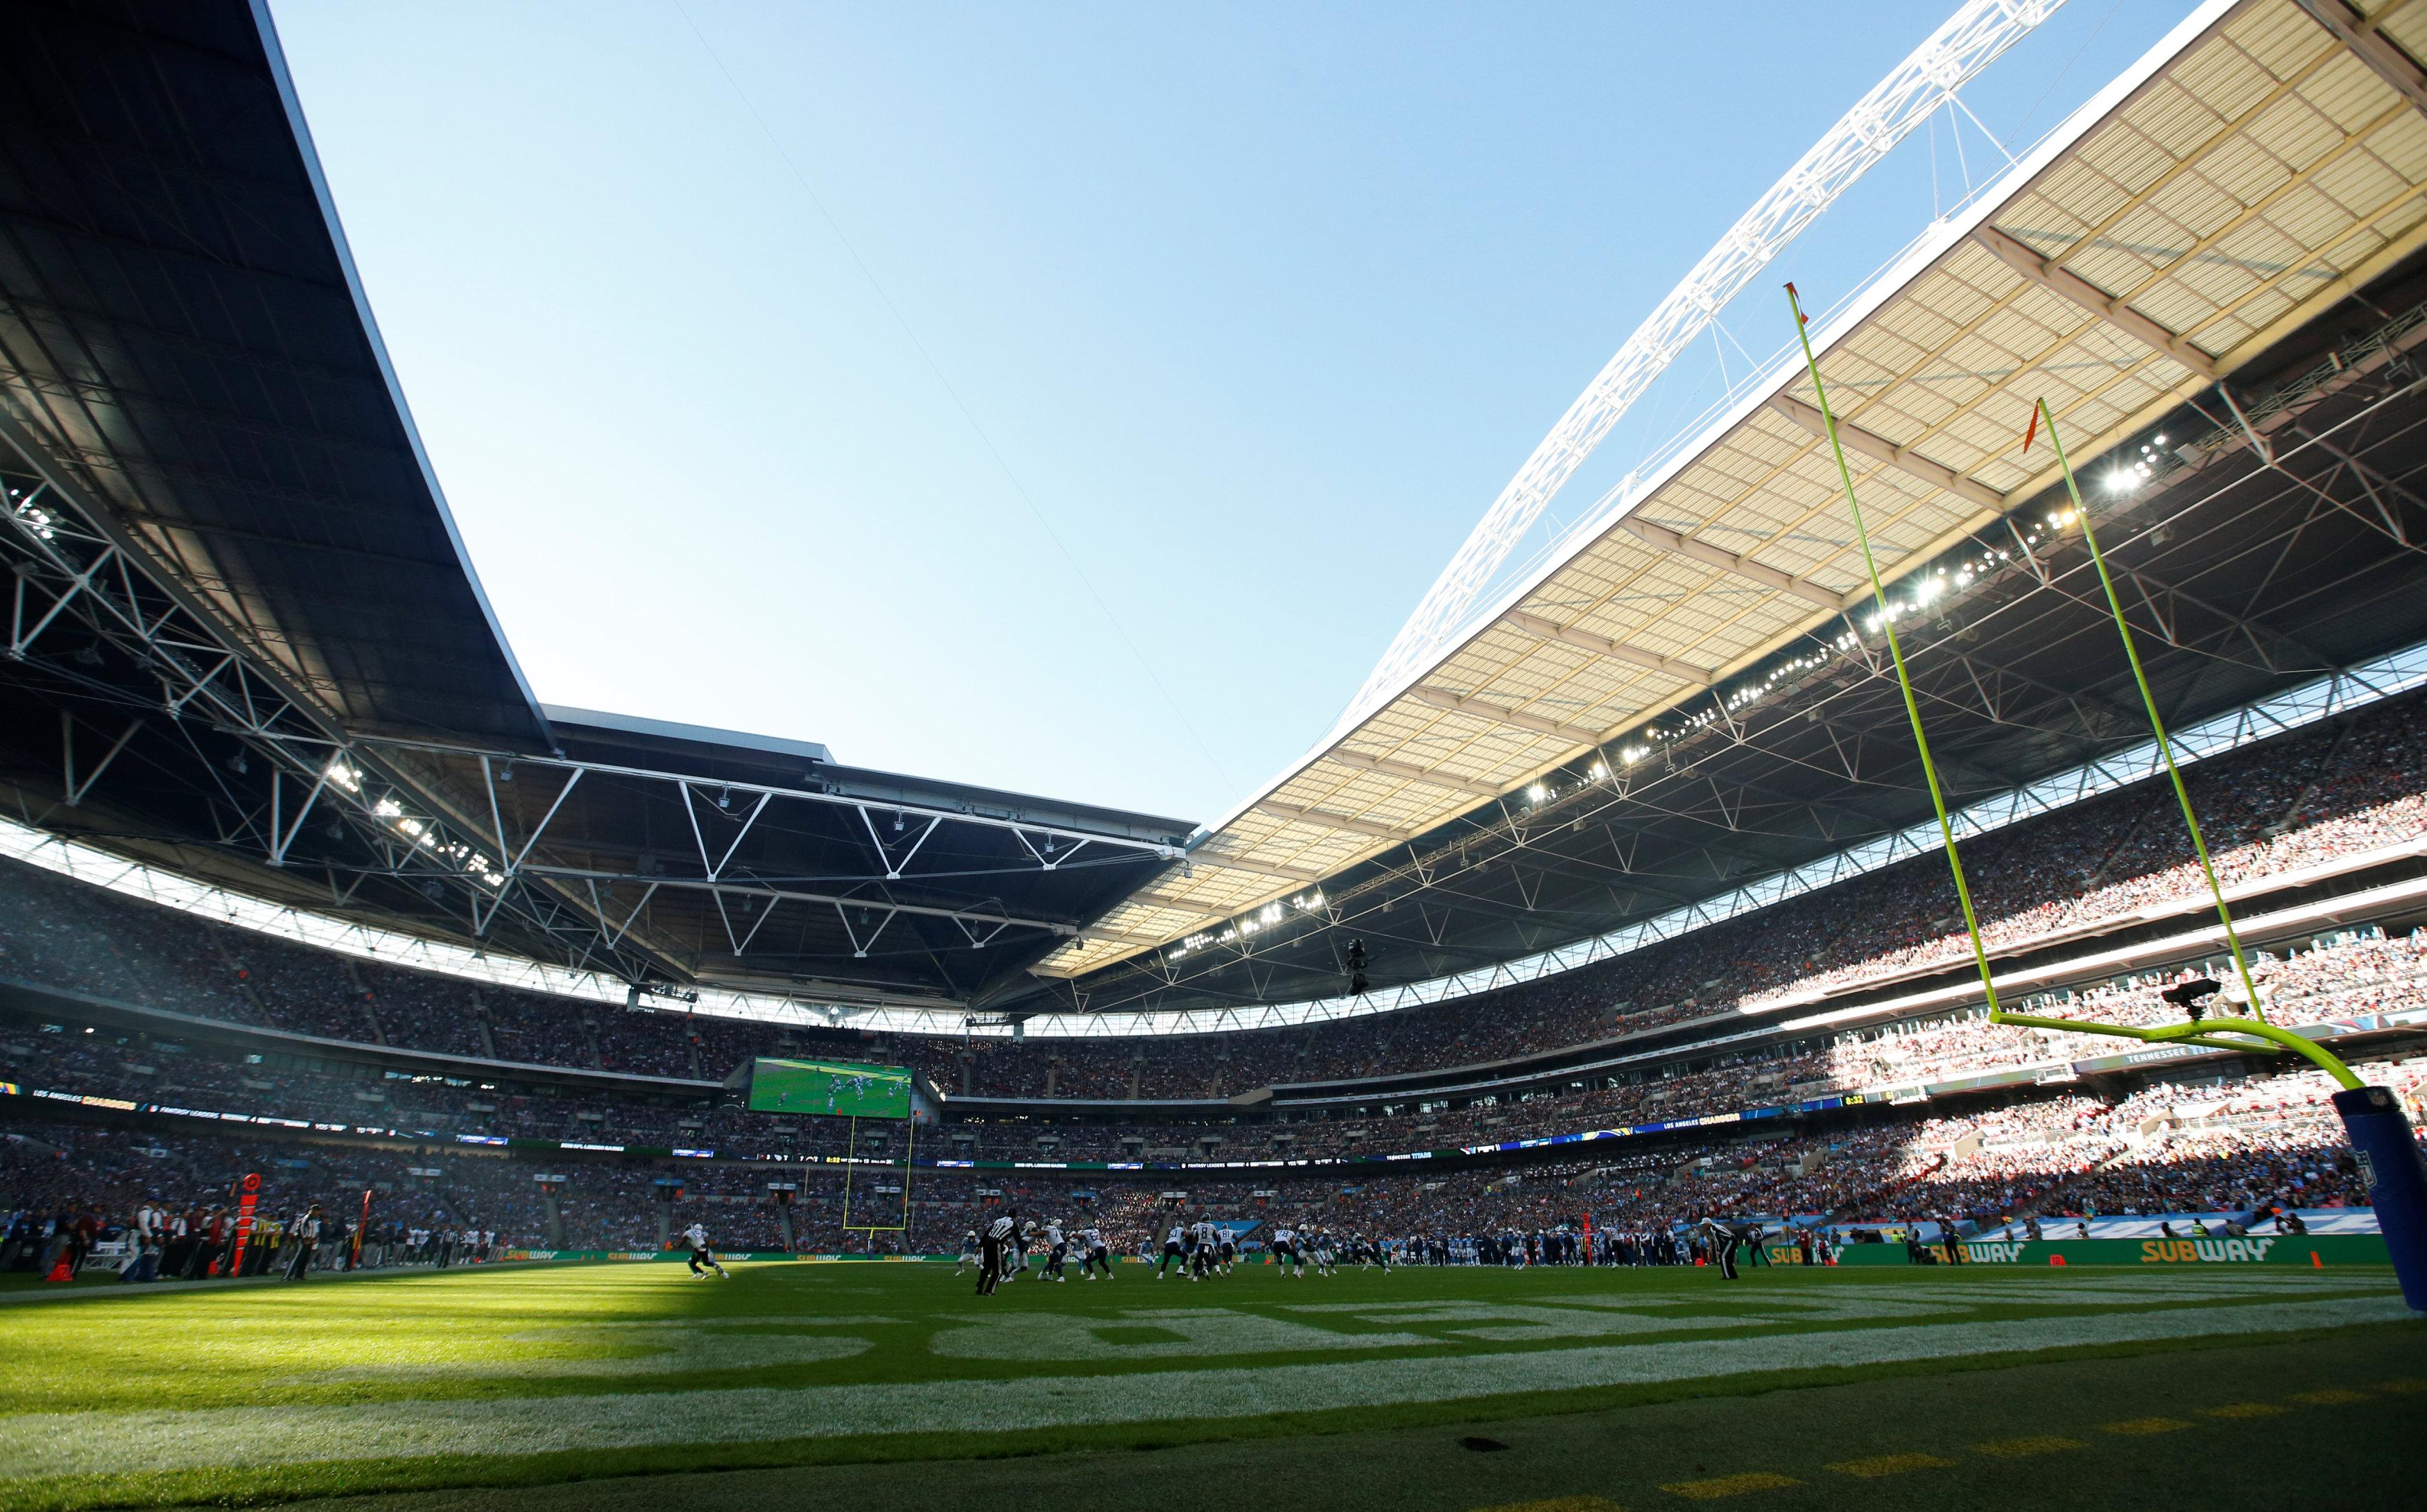 The NFL clash will be the third at Wembley inside a month